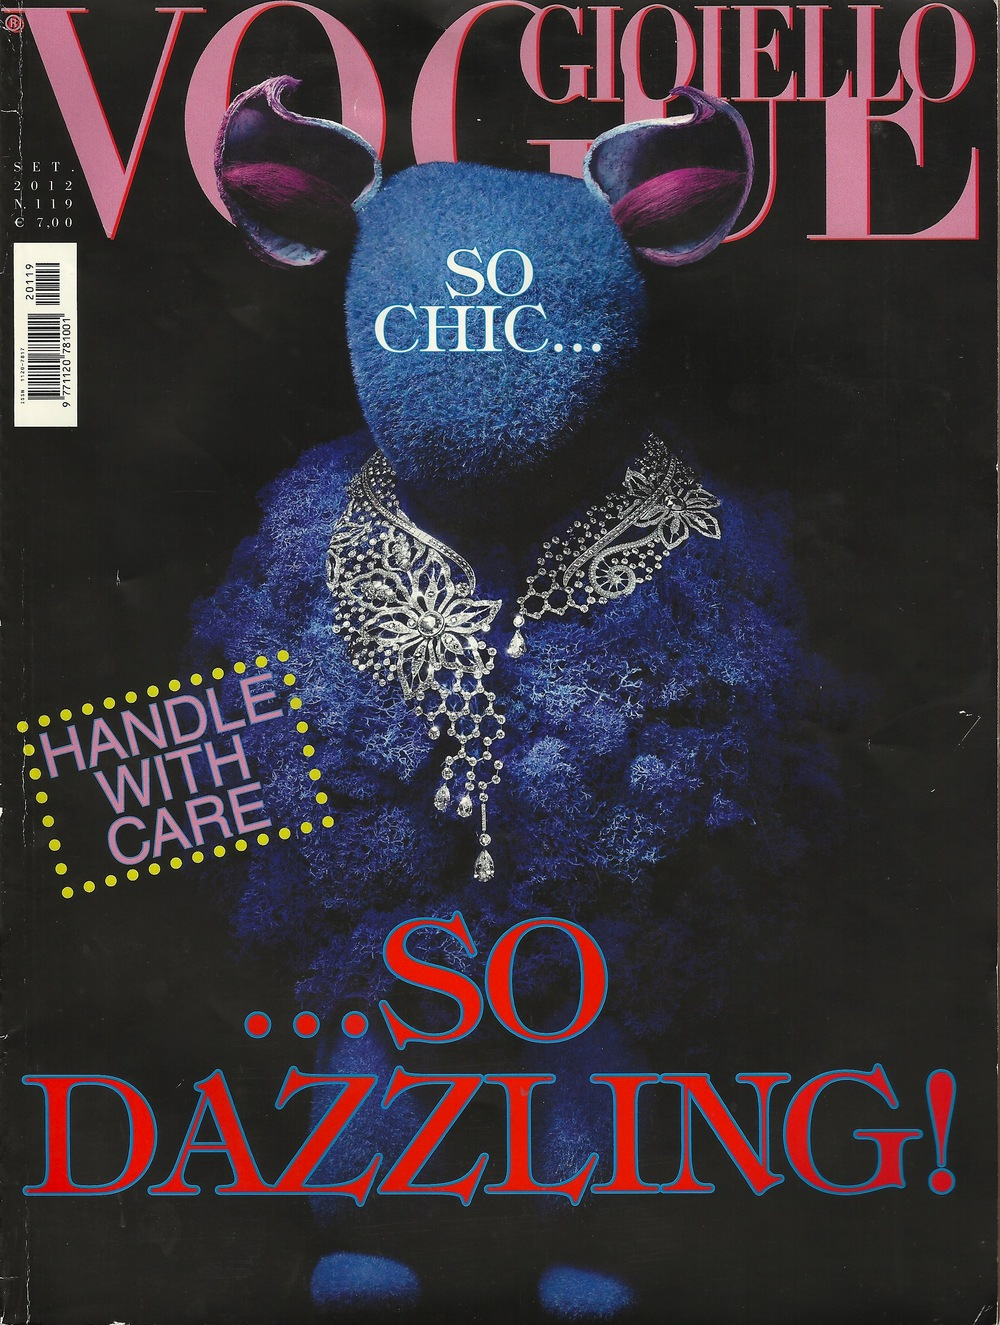 Vogue Gioiello Sept. 2012